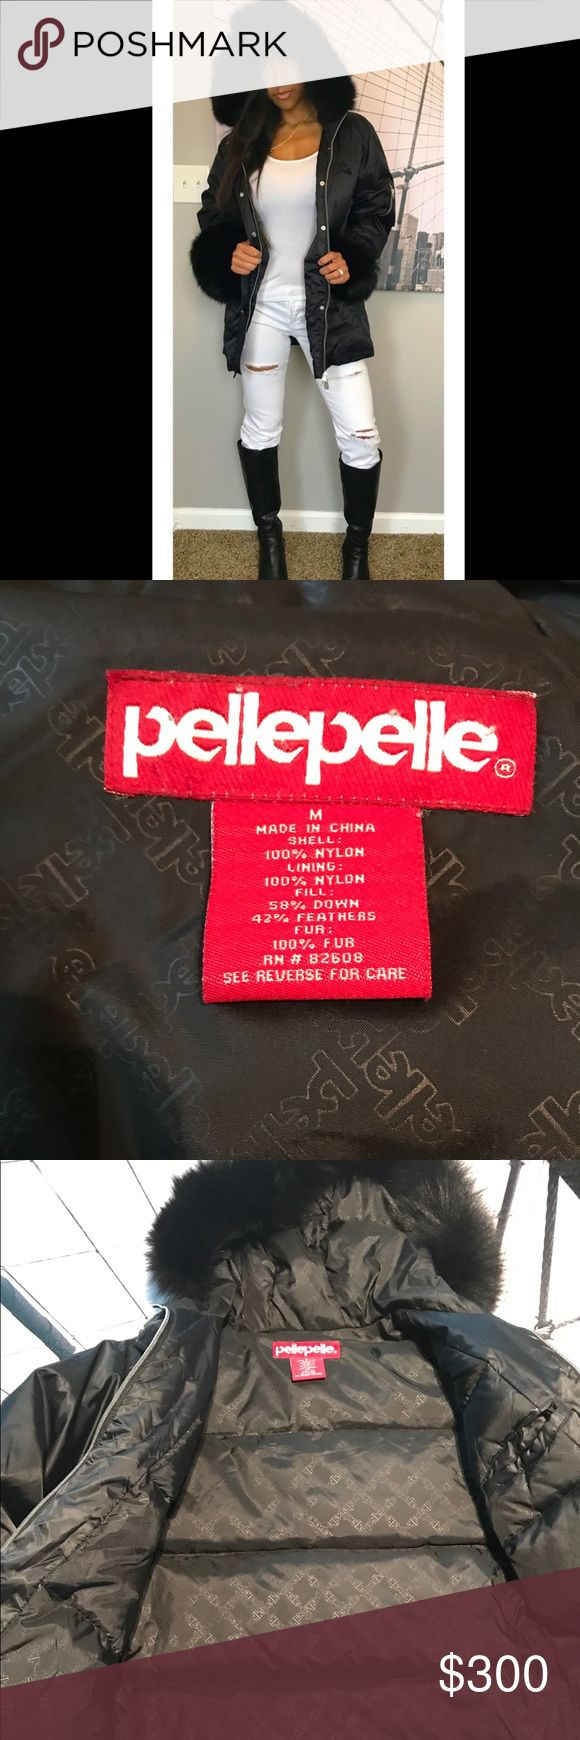 🎉HP! 🎉NEW AUTHENTIC PELLE PELLE WINTER COAT HOST PICK! 08/27/17 PRETTY, FLIRTY&GIRLY PARTY!RARE authentic PellePelle winter coat with real fur! Excellent condition, not a mark on it and fur is untouched. Fur can detach for easy care and maintenance. Pelle Pelle Jackets & Coats